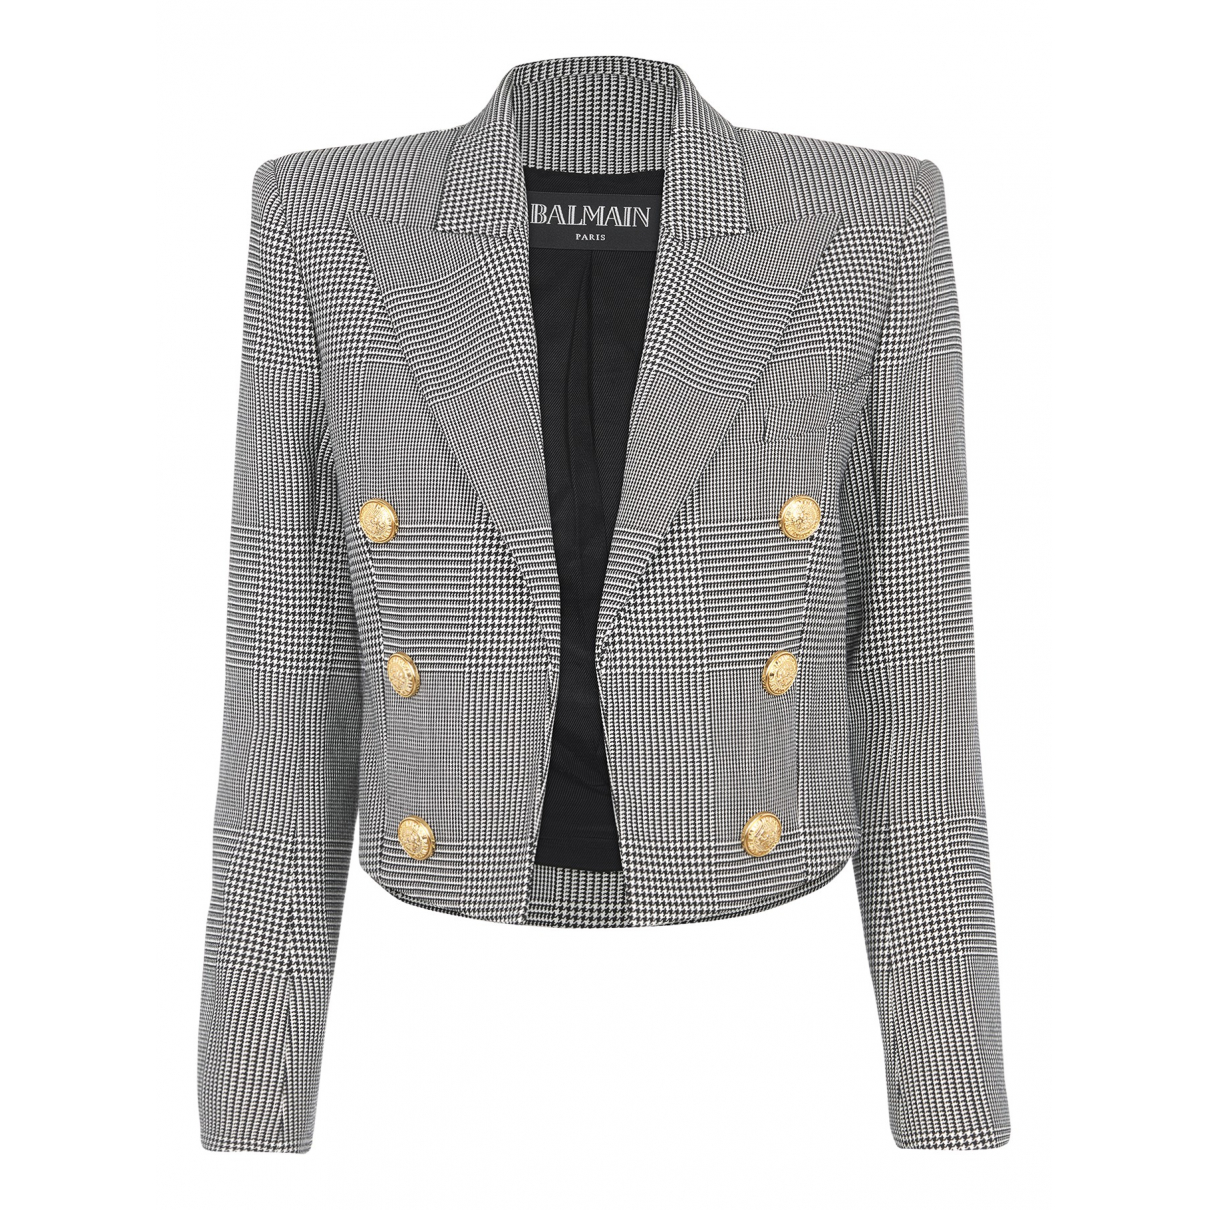 Balmain N Multicolour Wool jacket for Women 10 UK